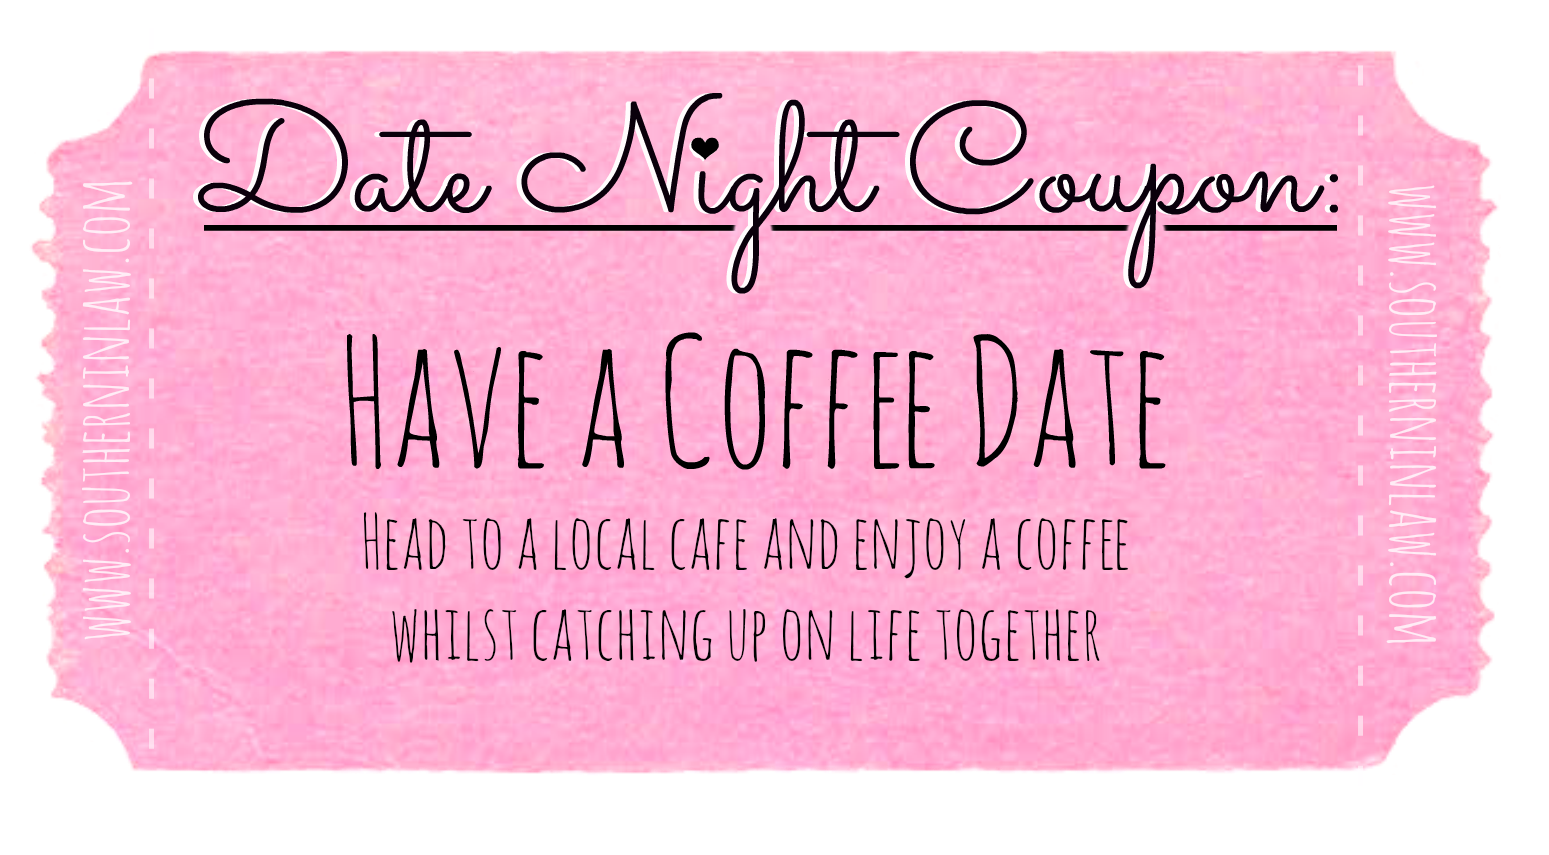 Affordable Date Ideas - Cheap Date Ideas Coupons - Have a coffee date